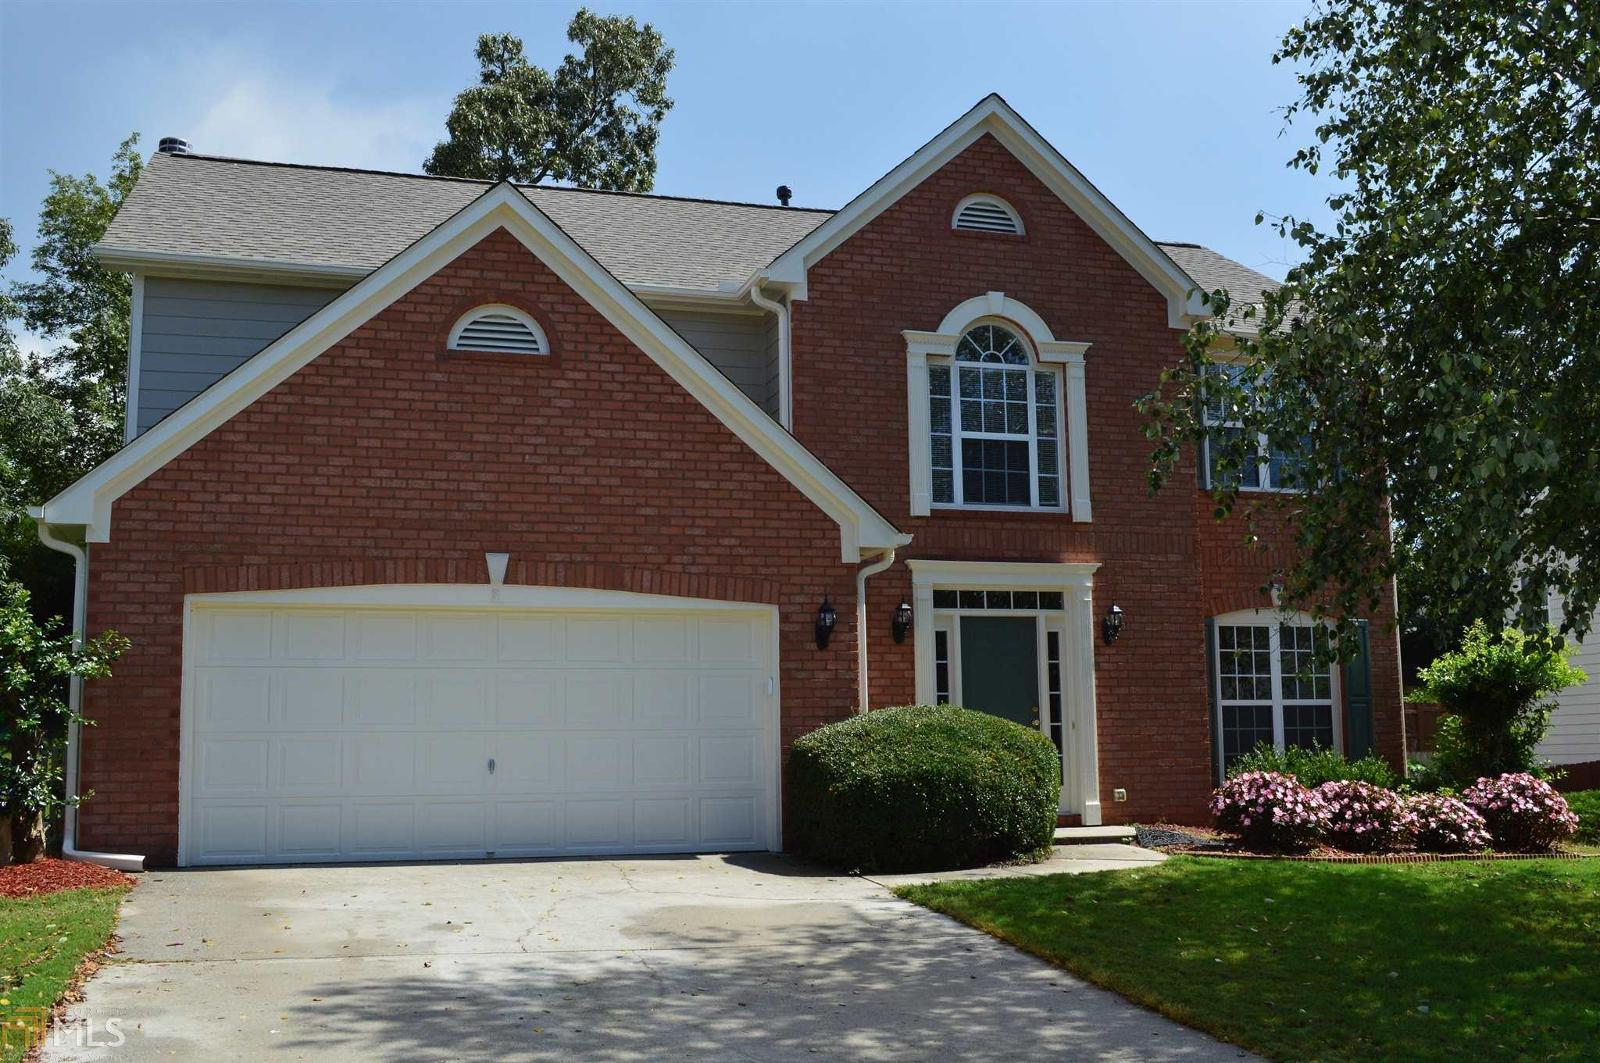 1660 great oaks dr lawrenceville ga mls 8244643 for Garage door repair lawrenceville